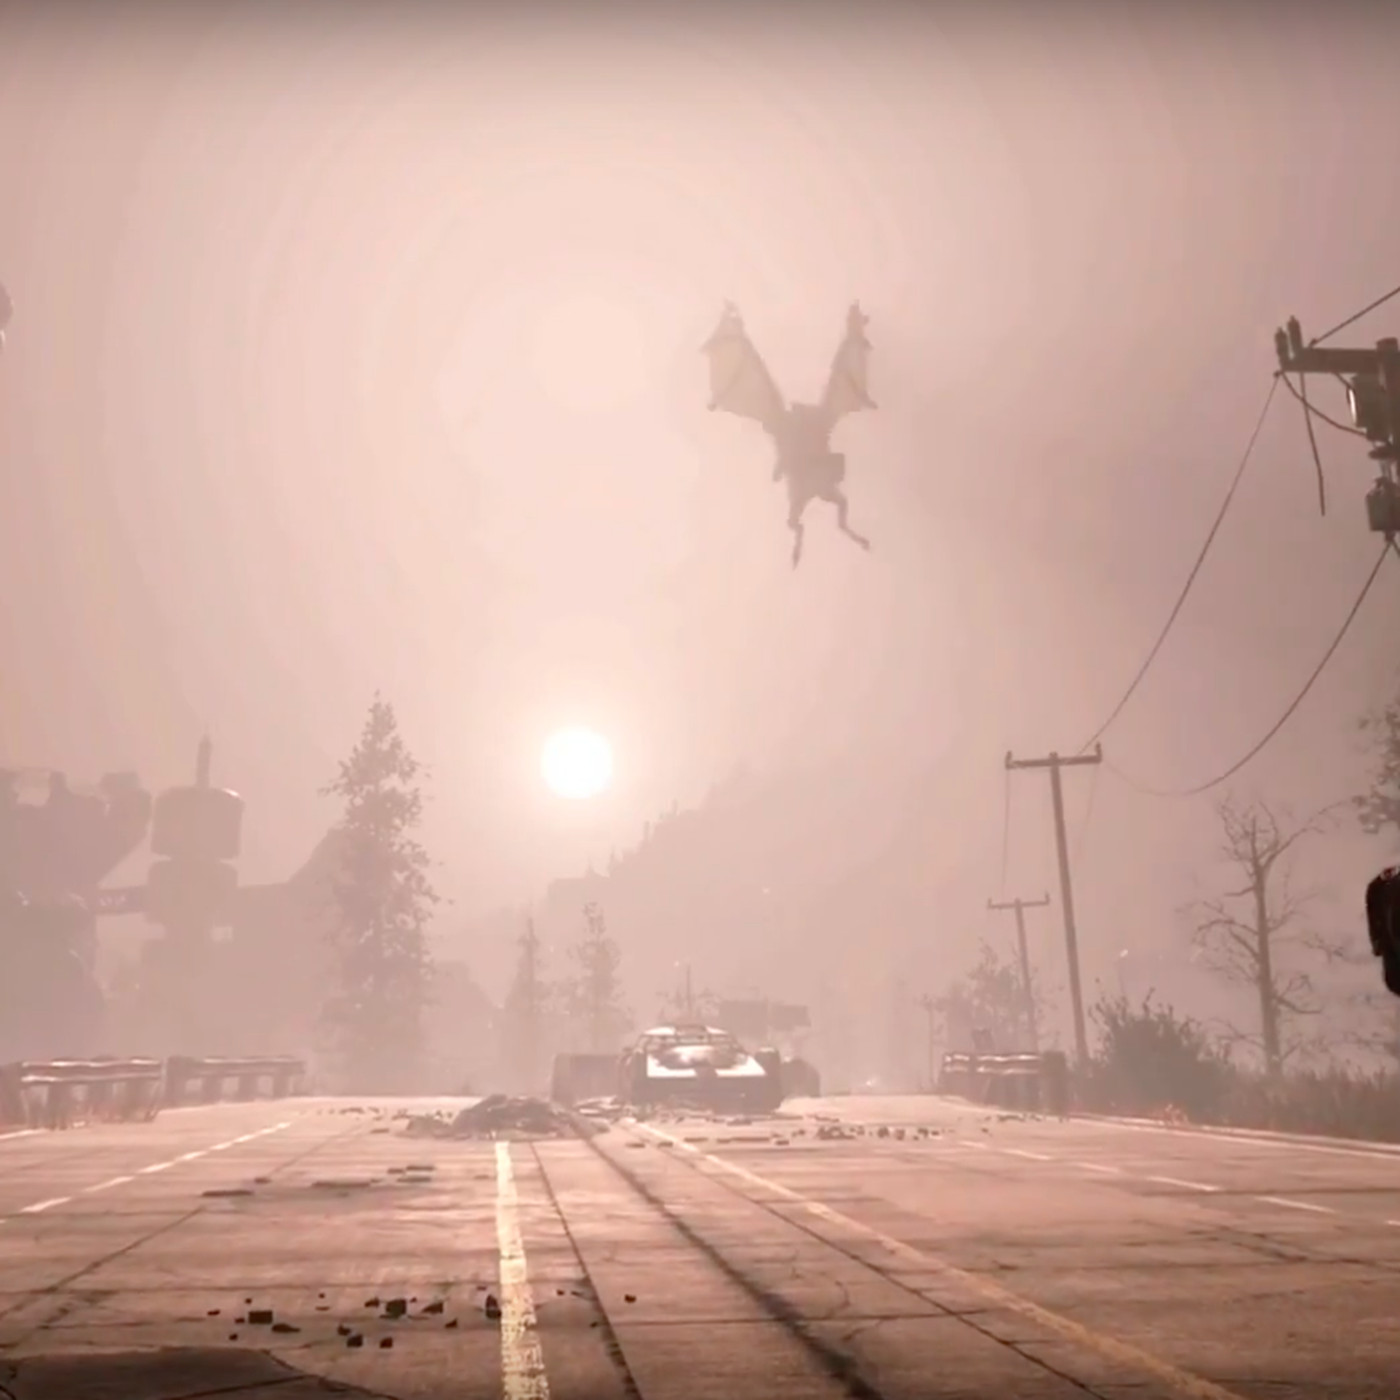 Fans think West Virginia urban legend Mothman is in Fallout 76 - The